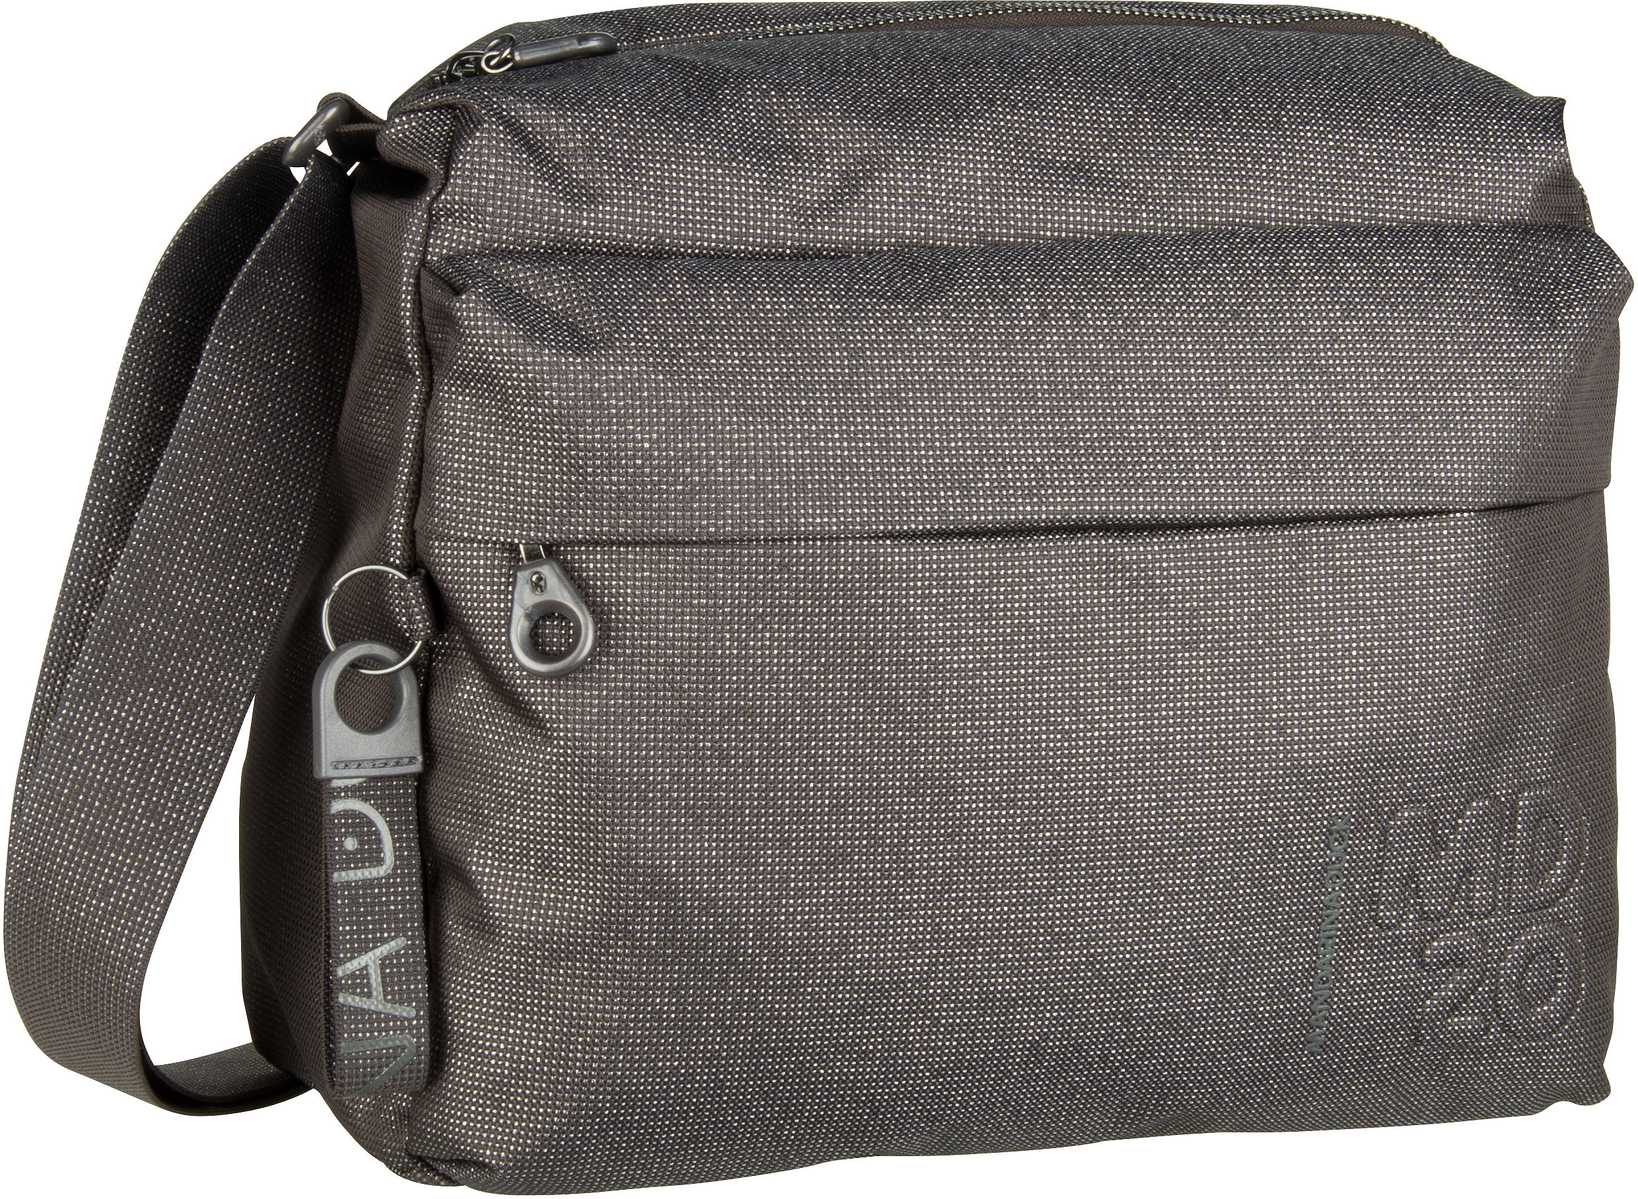 Umhängetasche MD20 Lux Crossover Bag QNTT4 Moon Dust